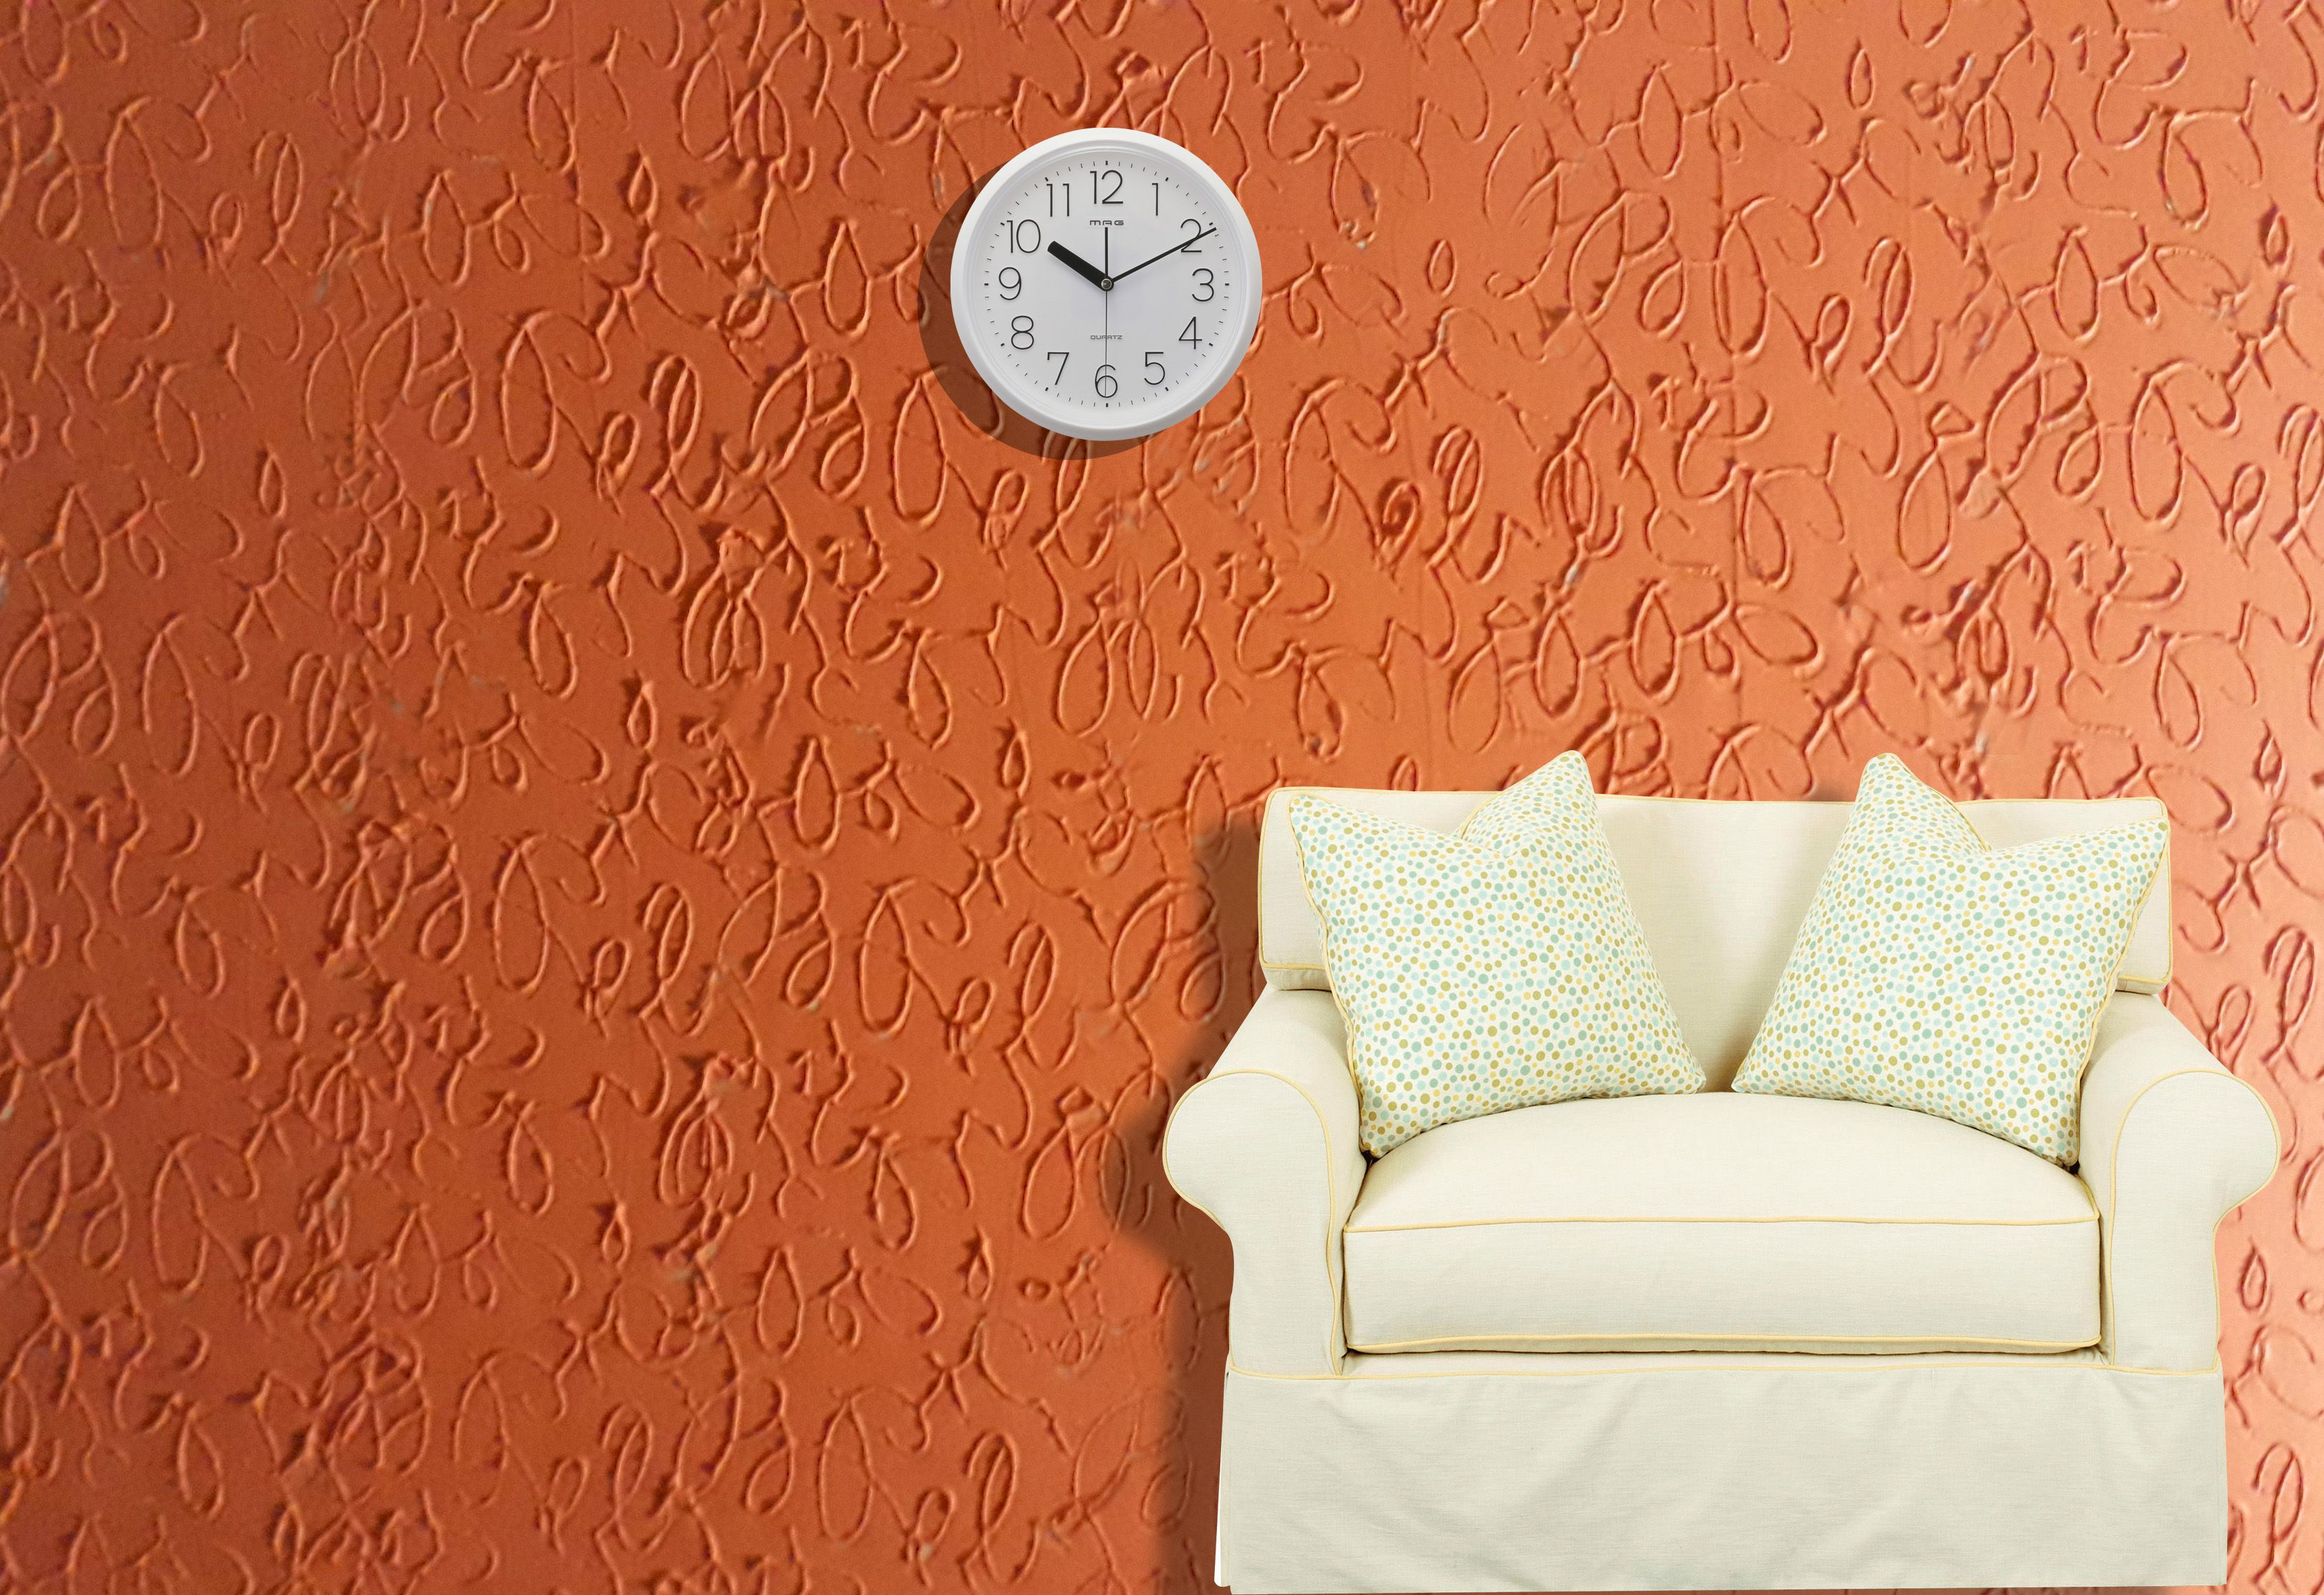 Decorative Texture On Dry Wall Wall Designs For Hall Asian Paint Design Wall Texture Design